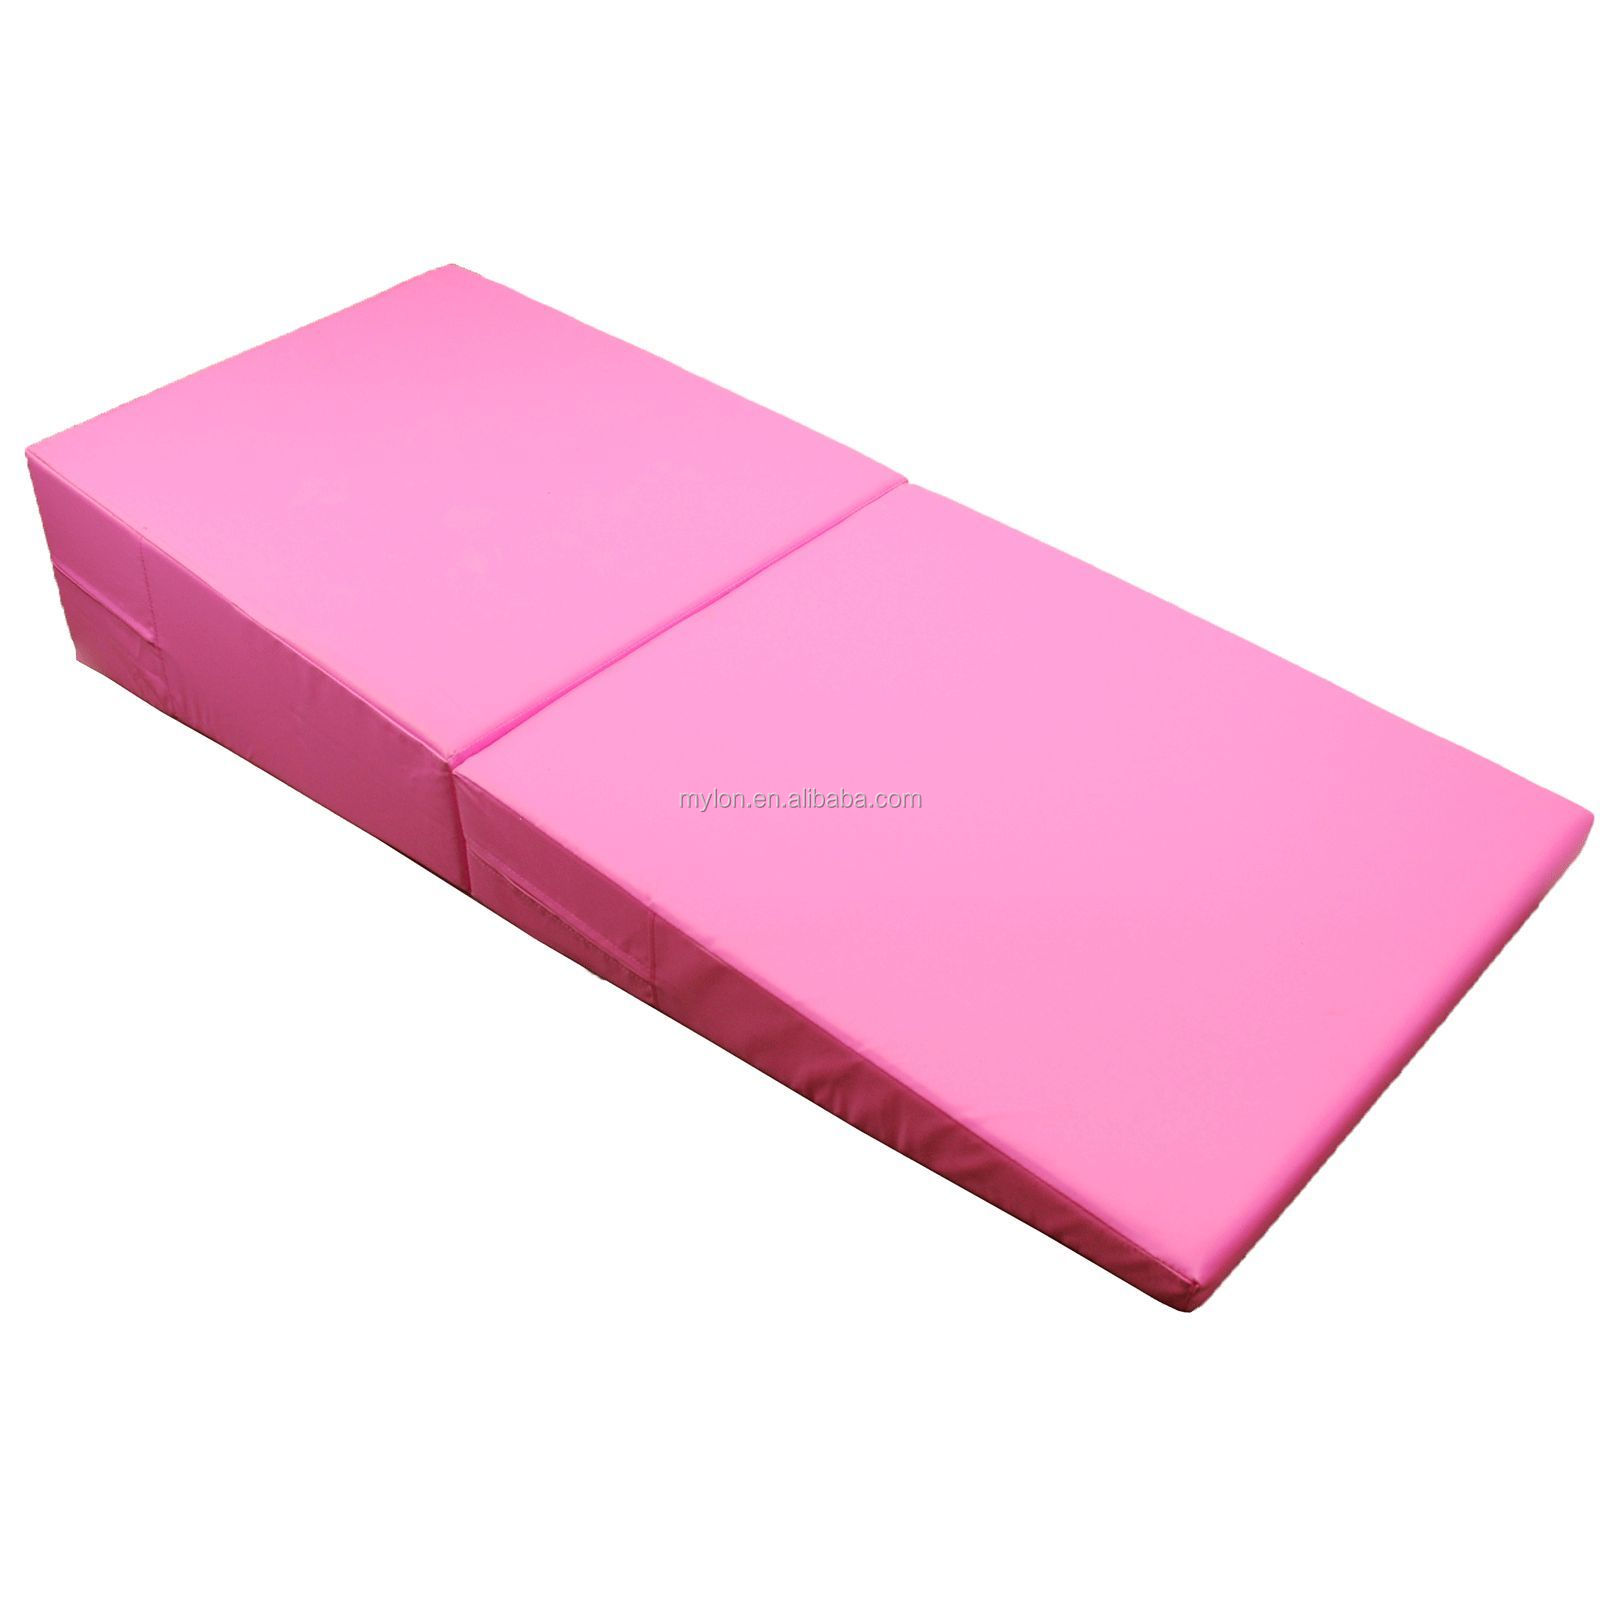 mats sale sports gym gymnastic training from tumble mat on inflatable item for big gymnastics in entertainment